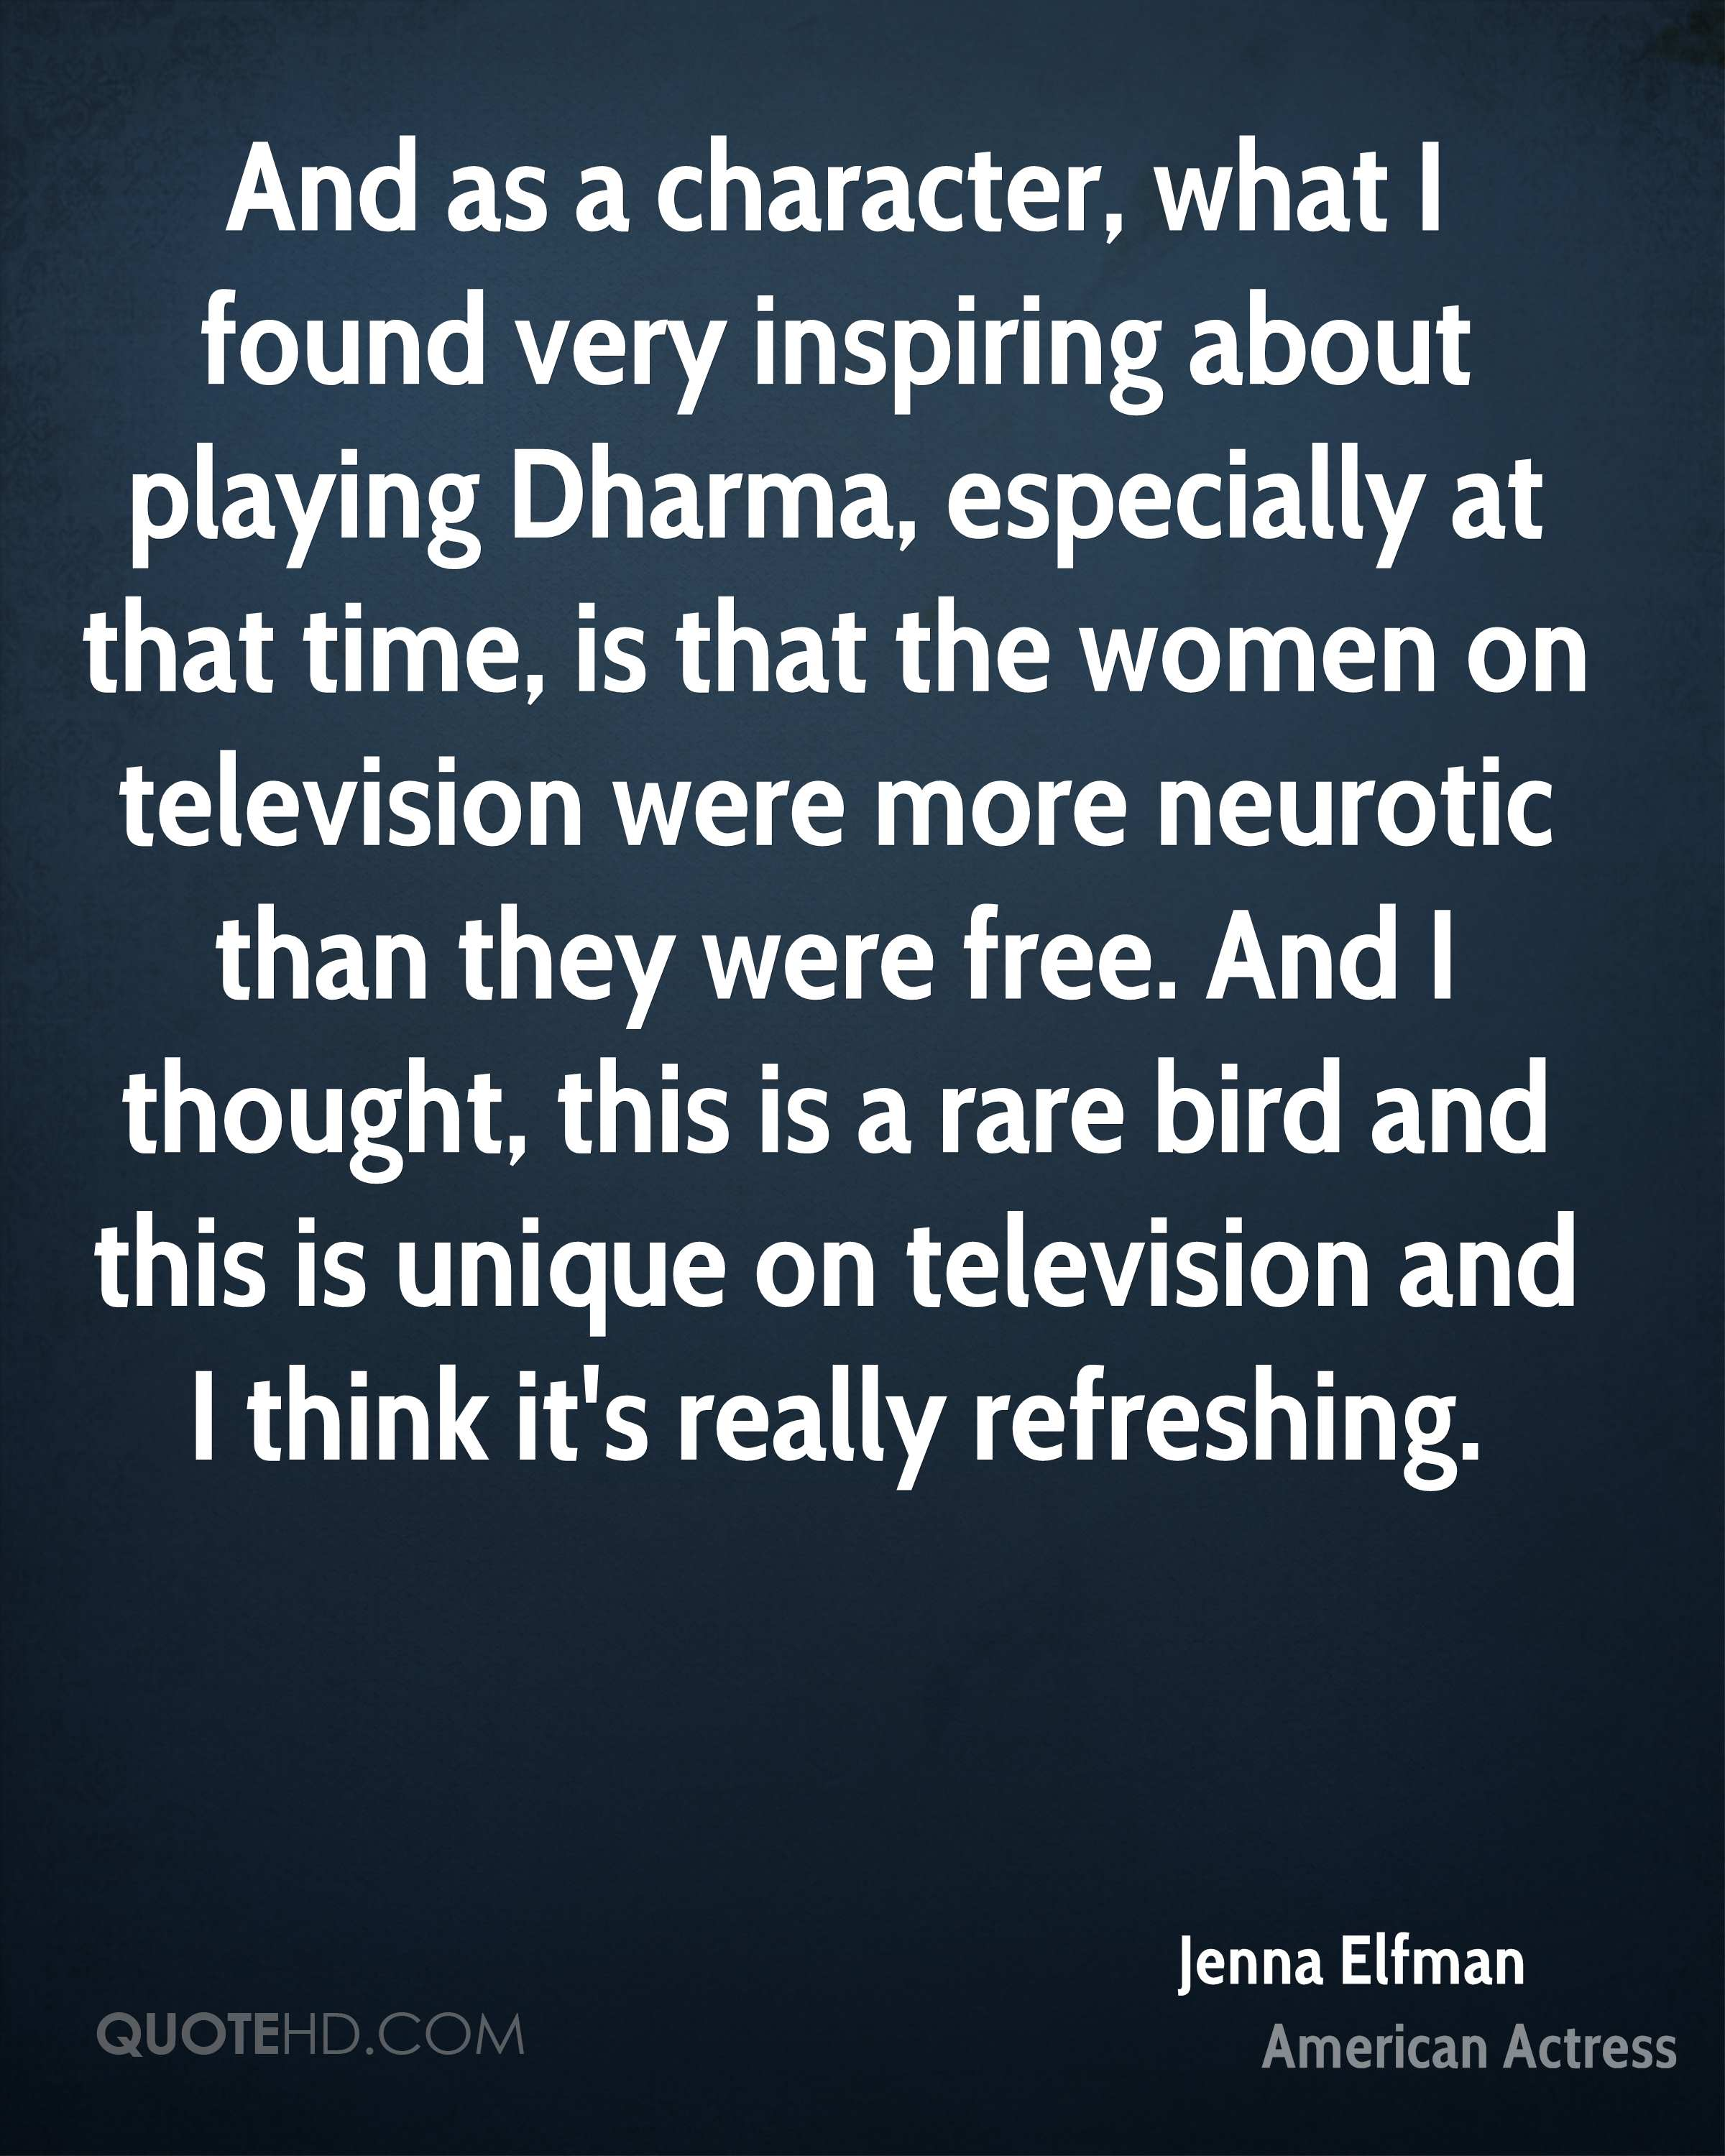 And as a character, what I found very inspiring about playing Dharma, especially at that time, is that the women on television were more neurotic than they were free. And I thought, this is a rare bird and this is unique on television and I think it's really refreshing.